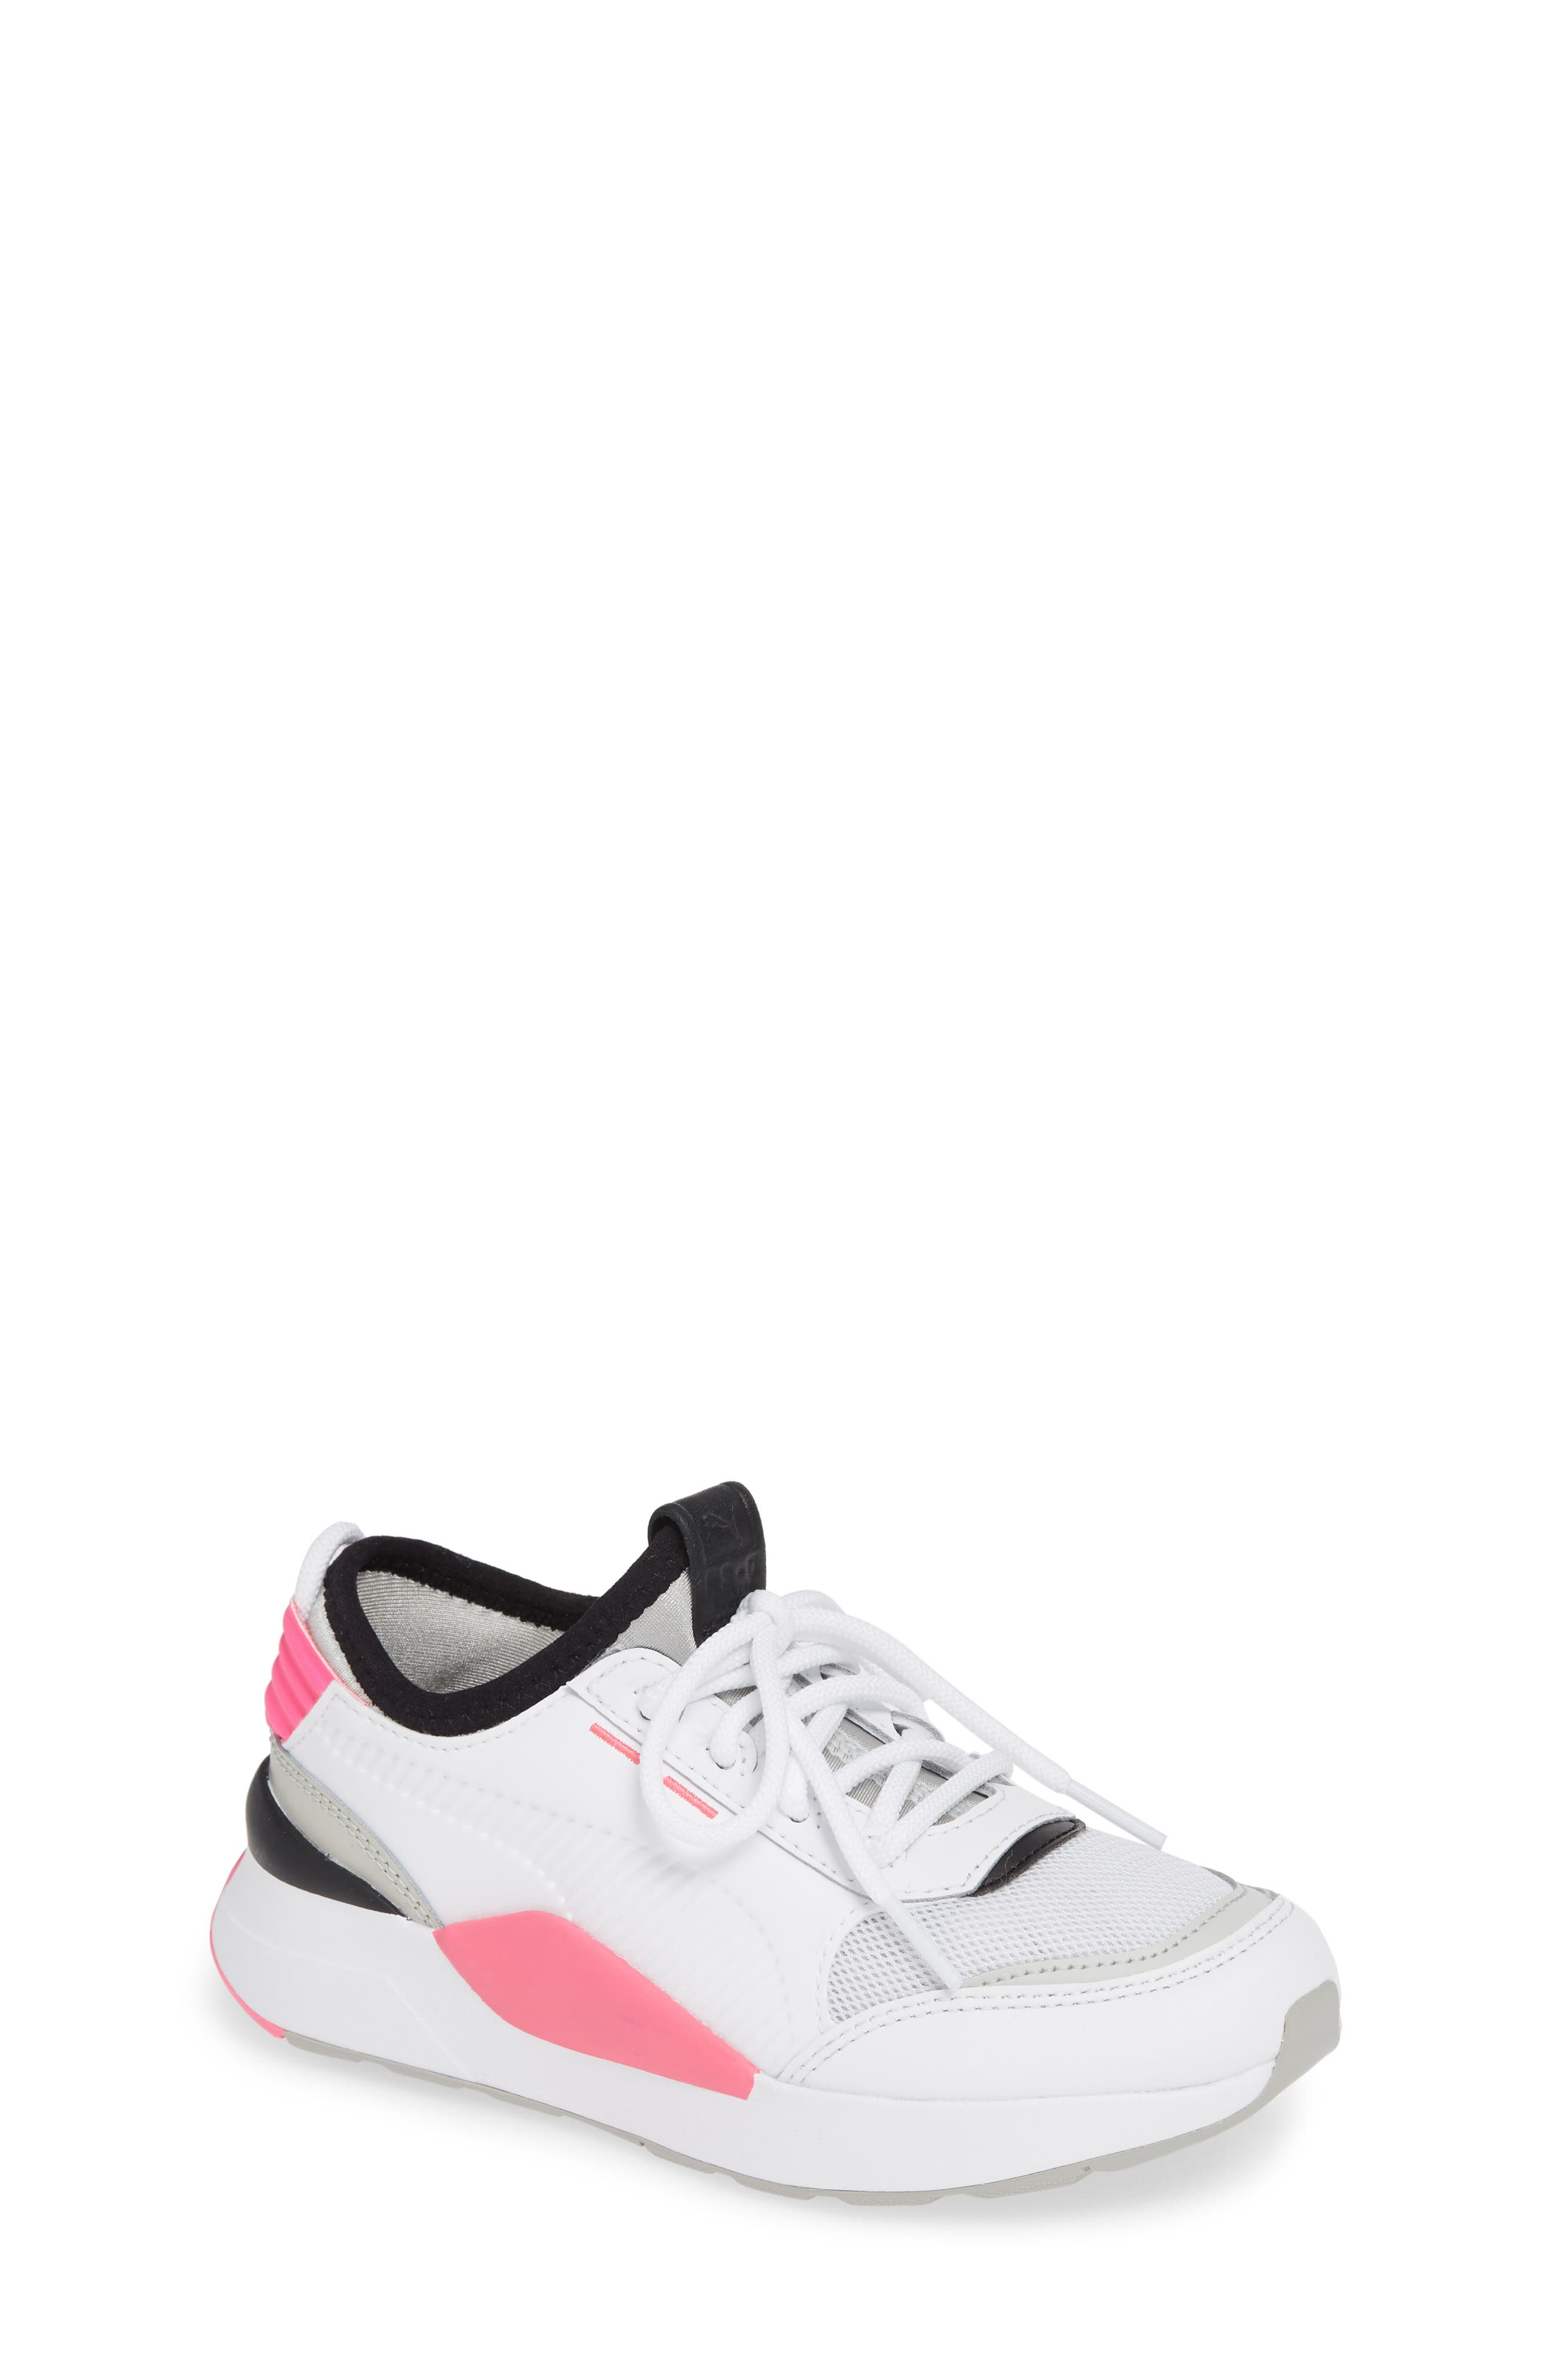 RS-0 Play Sneaker,                             Main thumbnail 1, color,                             WHITE/ GRAY VIOLET